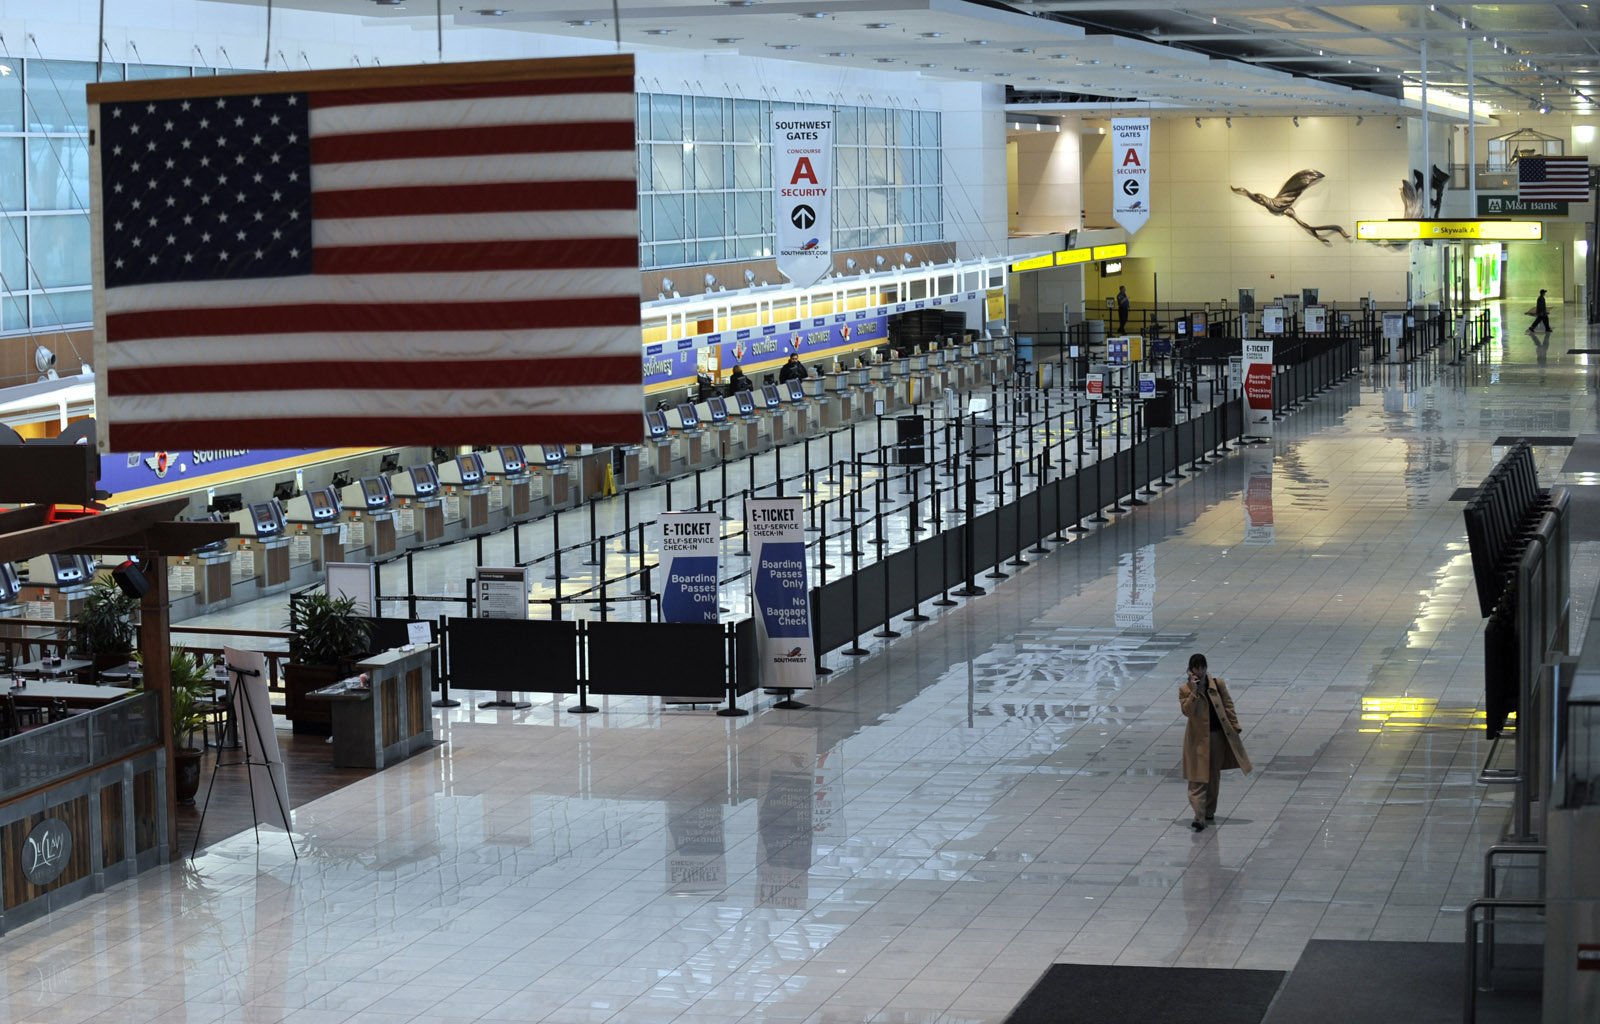 Metrobus connection to BWI Marshall, others could get chopped